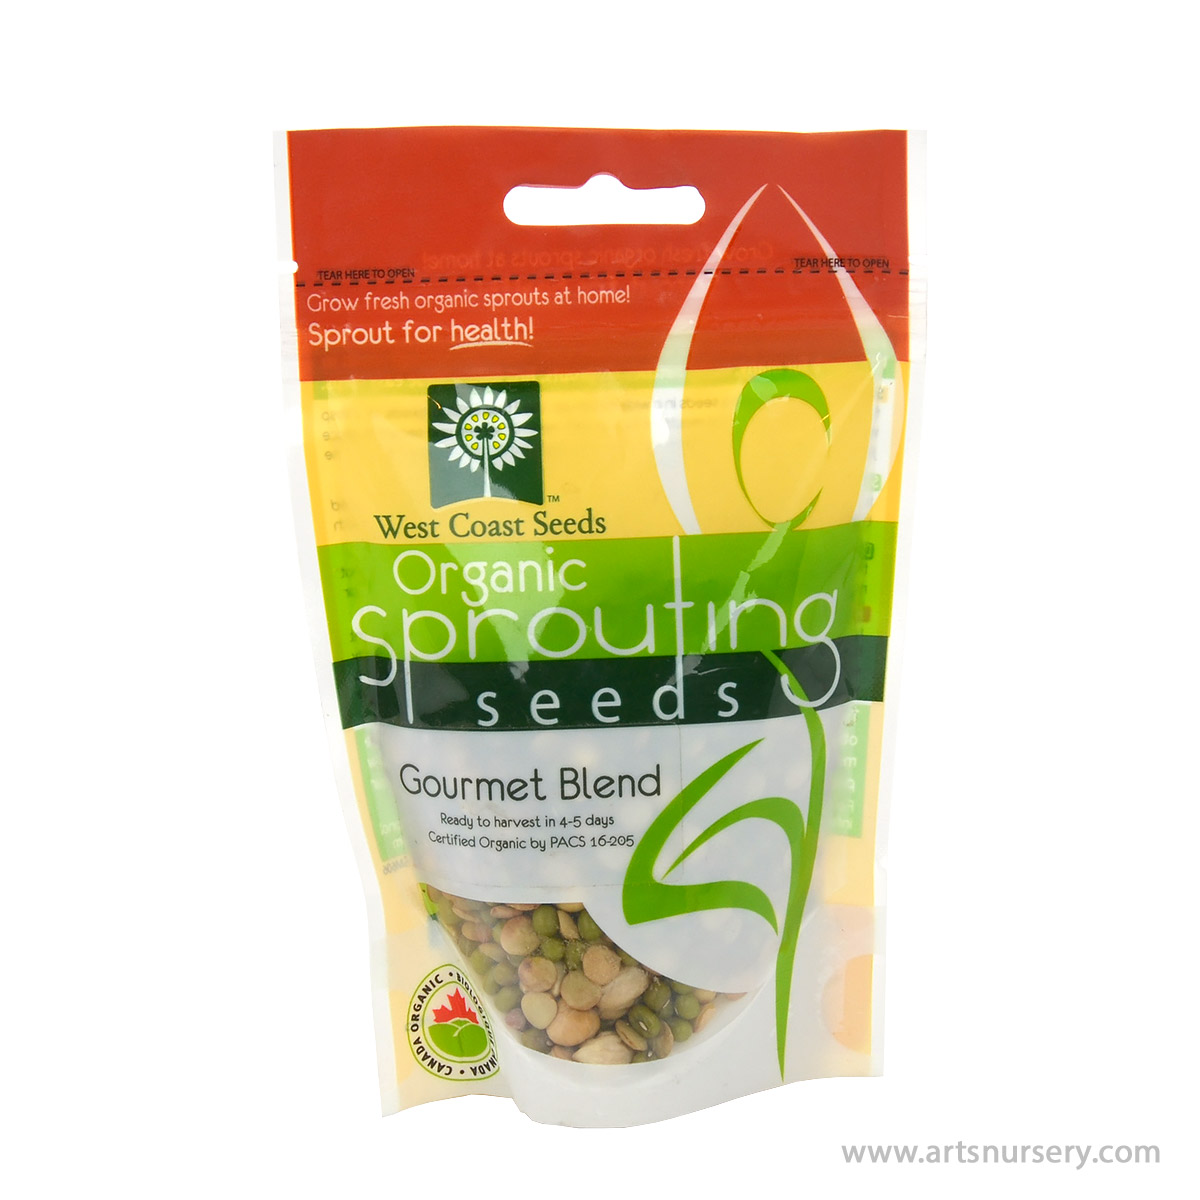 Gourmet Blend Sprouting Seeds